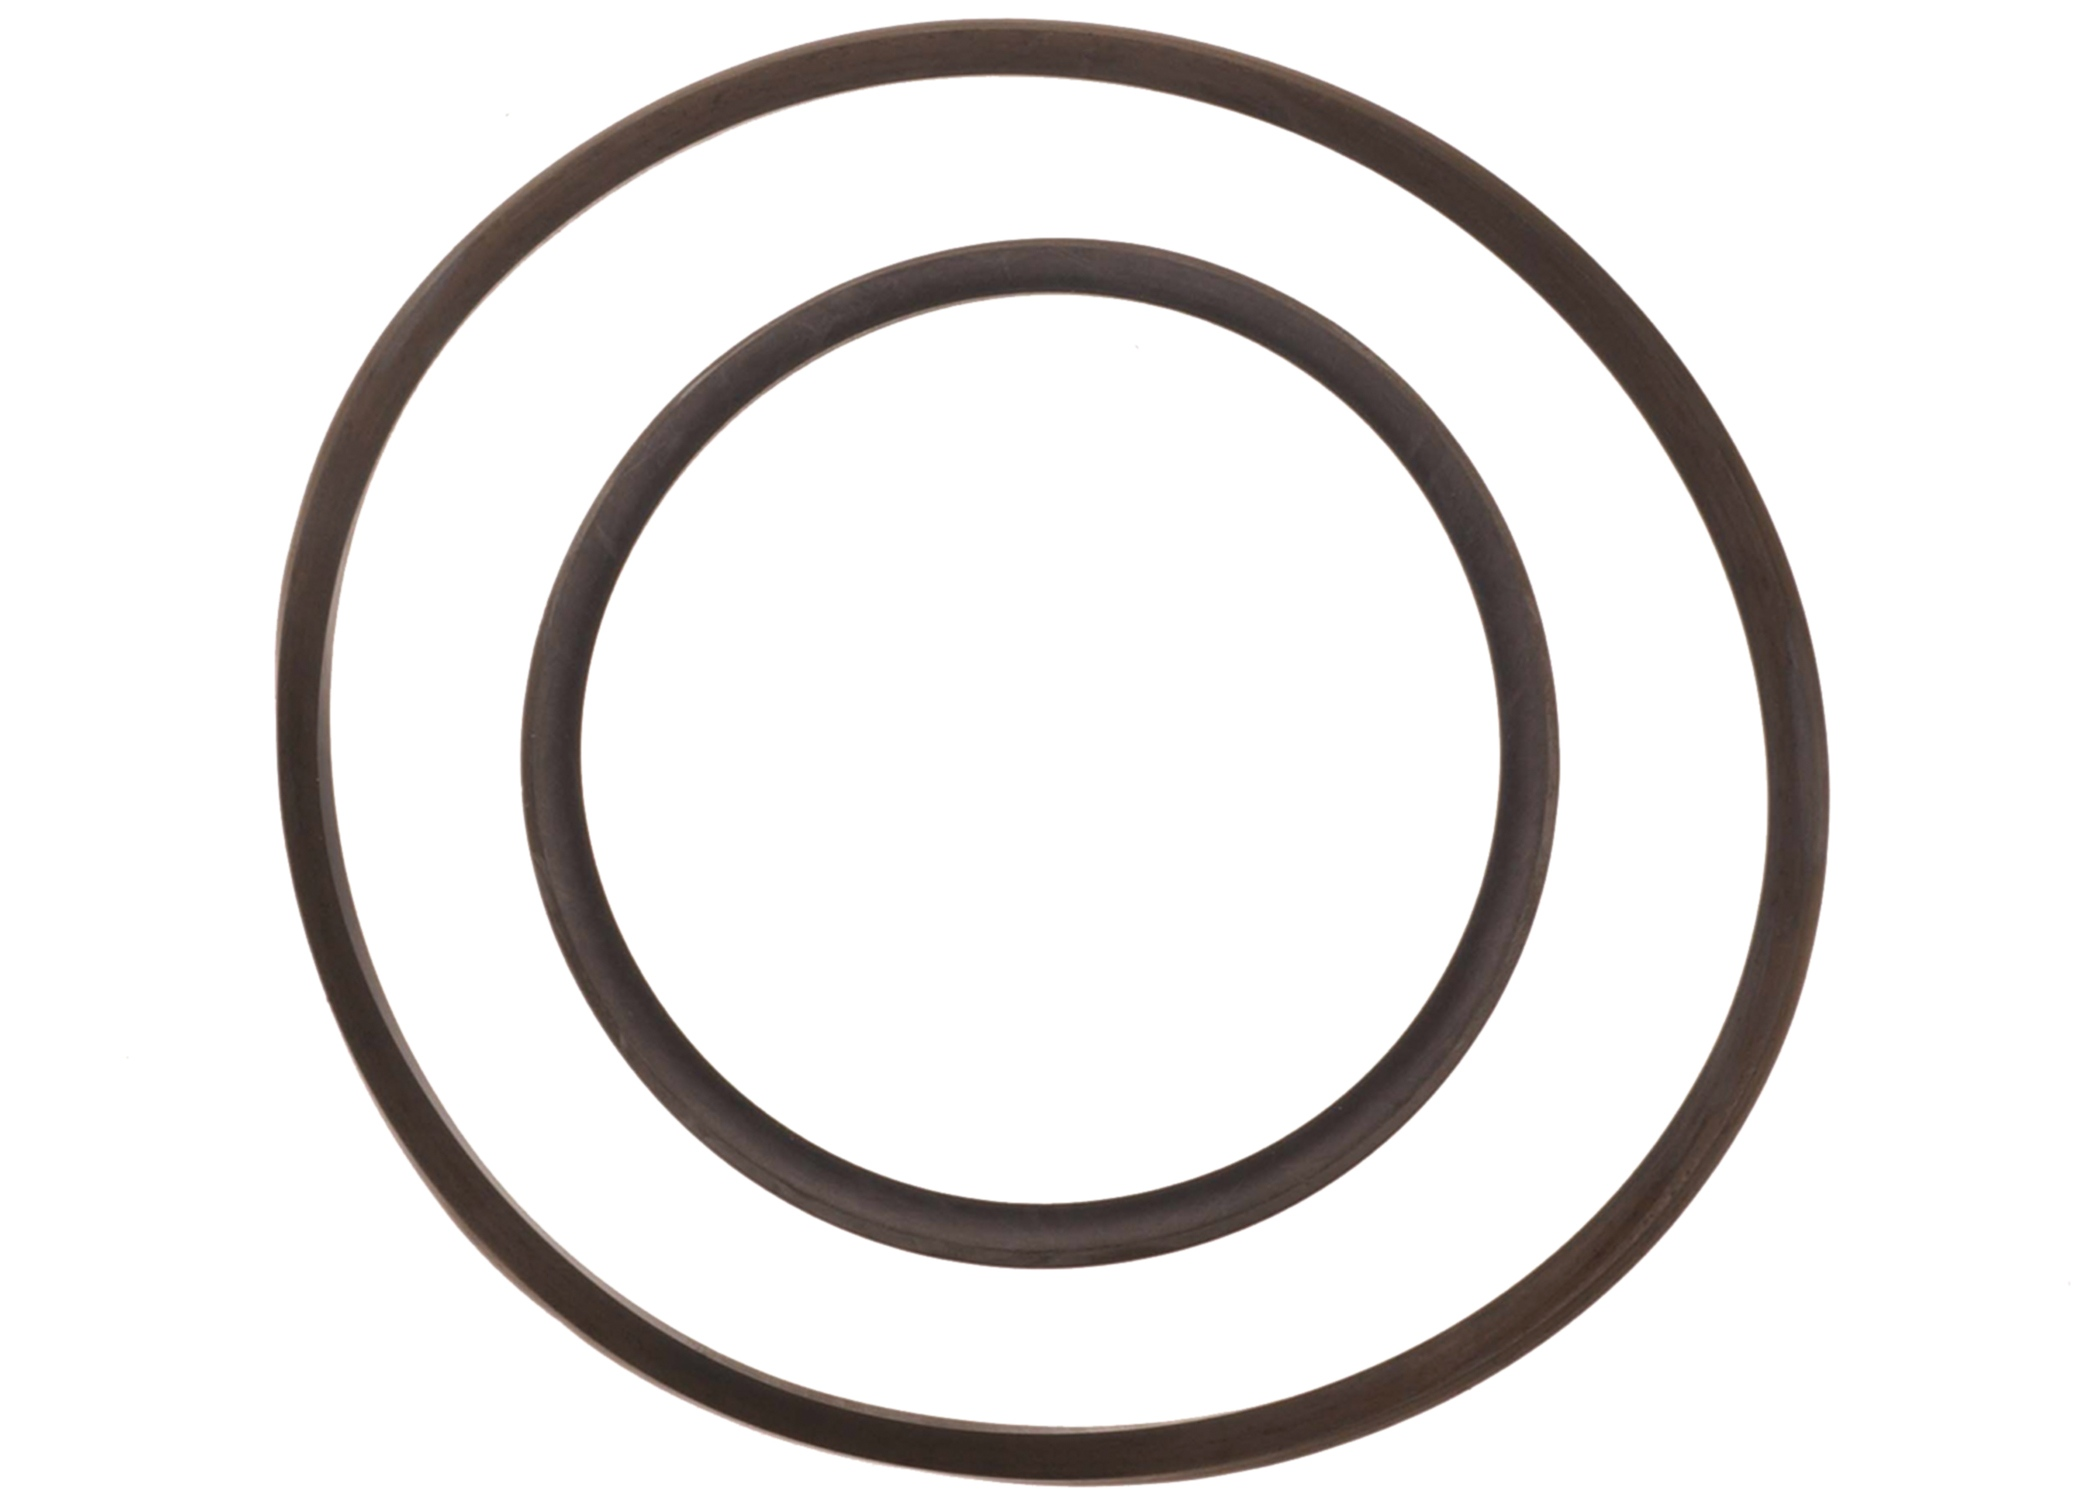 ACDELCO OE SERVICE - 4th Clutch Piston Seal Kit - DCB 8644917